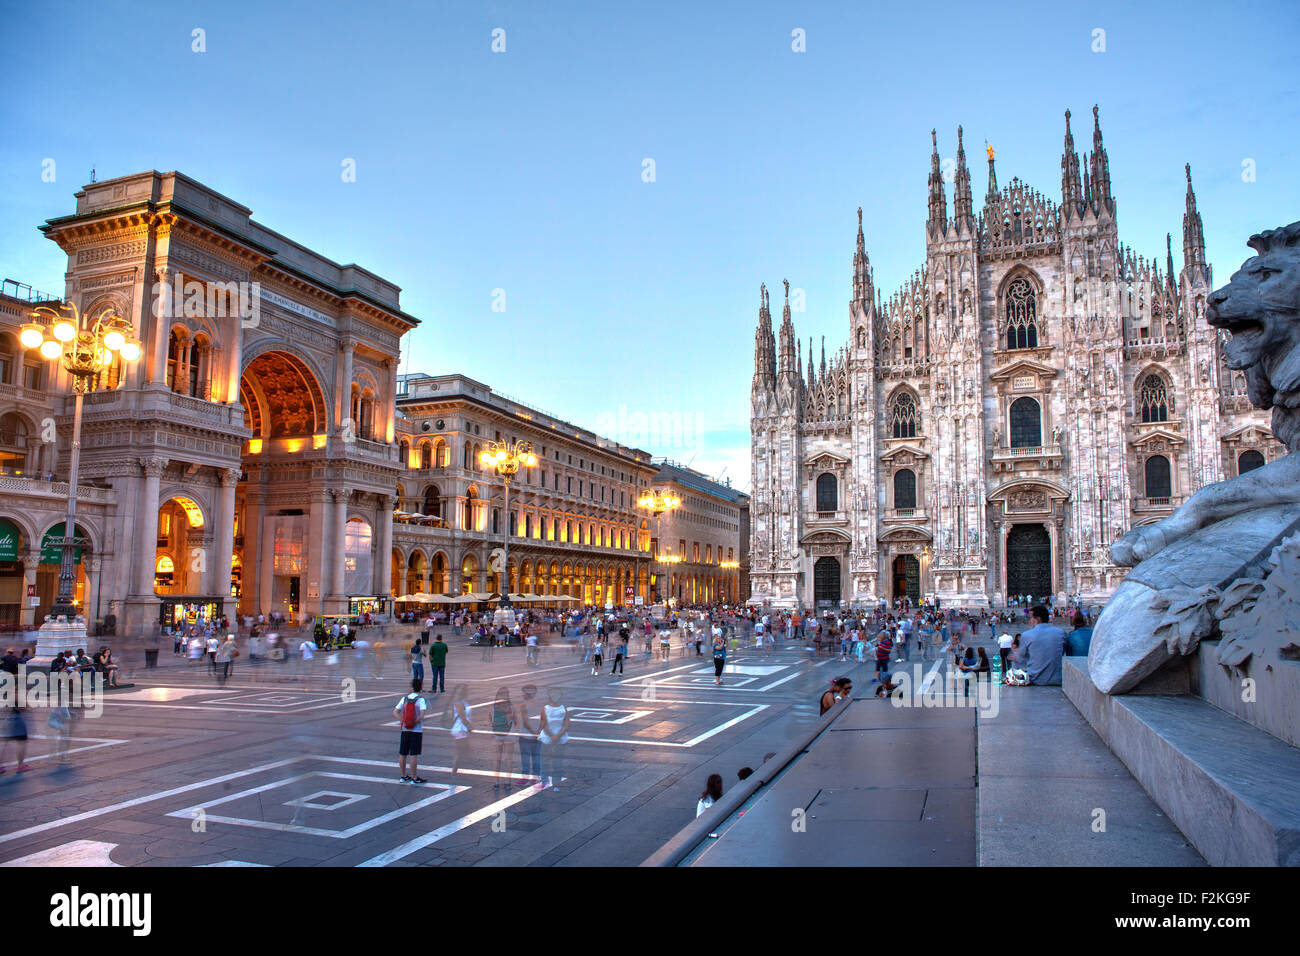 View of Piazza del Duomo in Milan, Italy - Stock Image